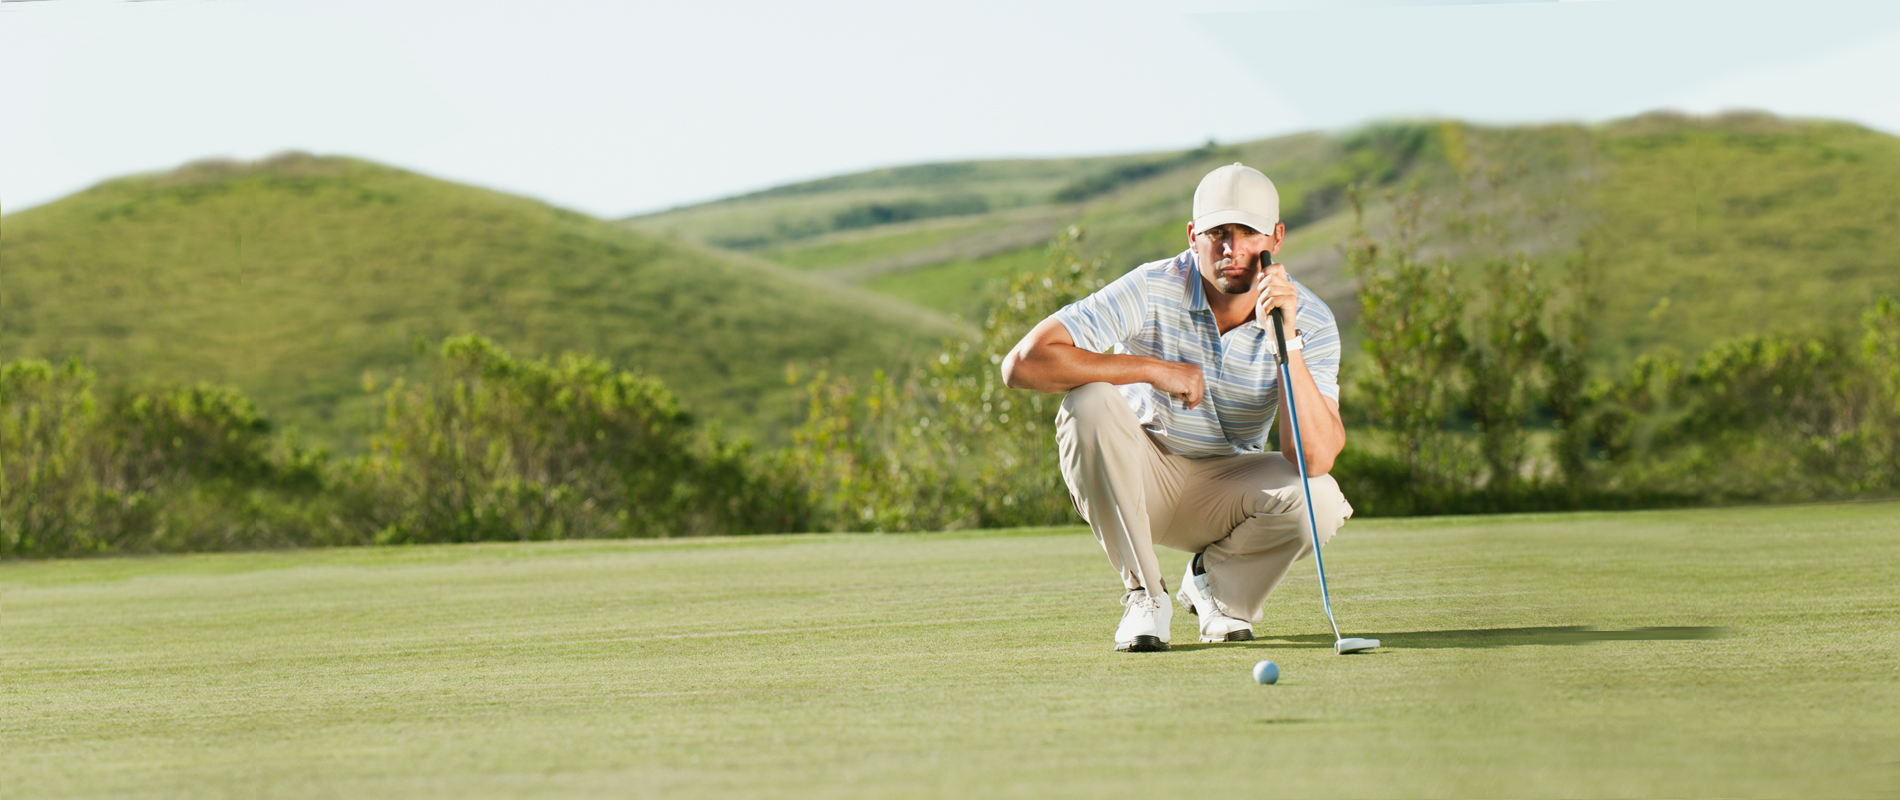 SINK YOUR PUTT, NOT YOUR NETWORK